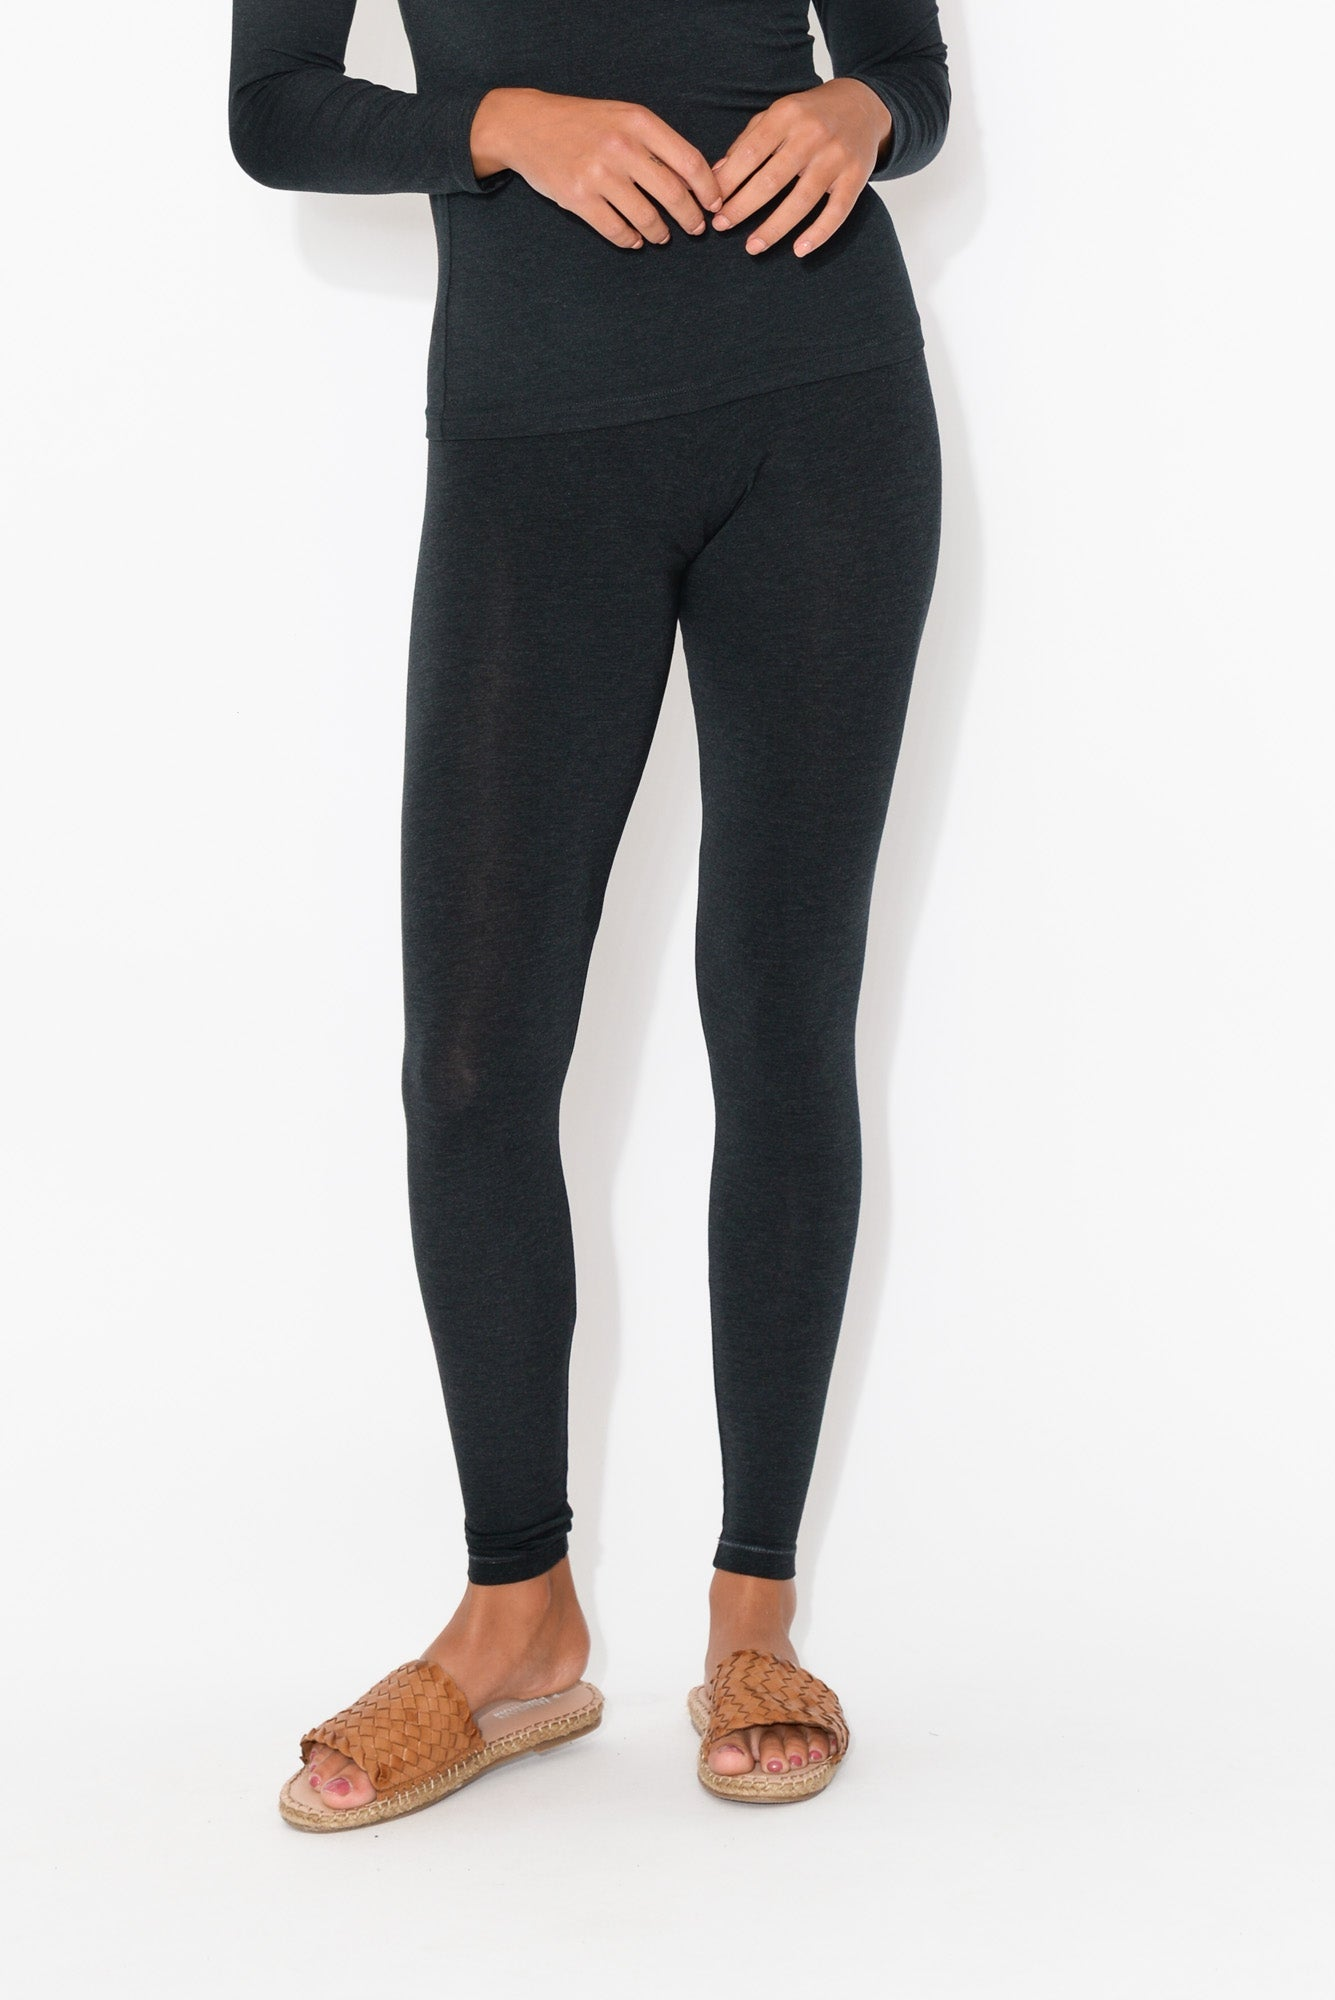 Charcoal Marle Modal Stretch Legging